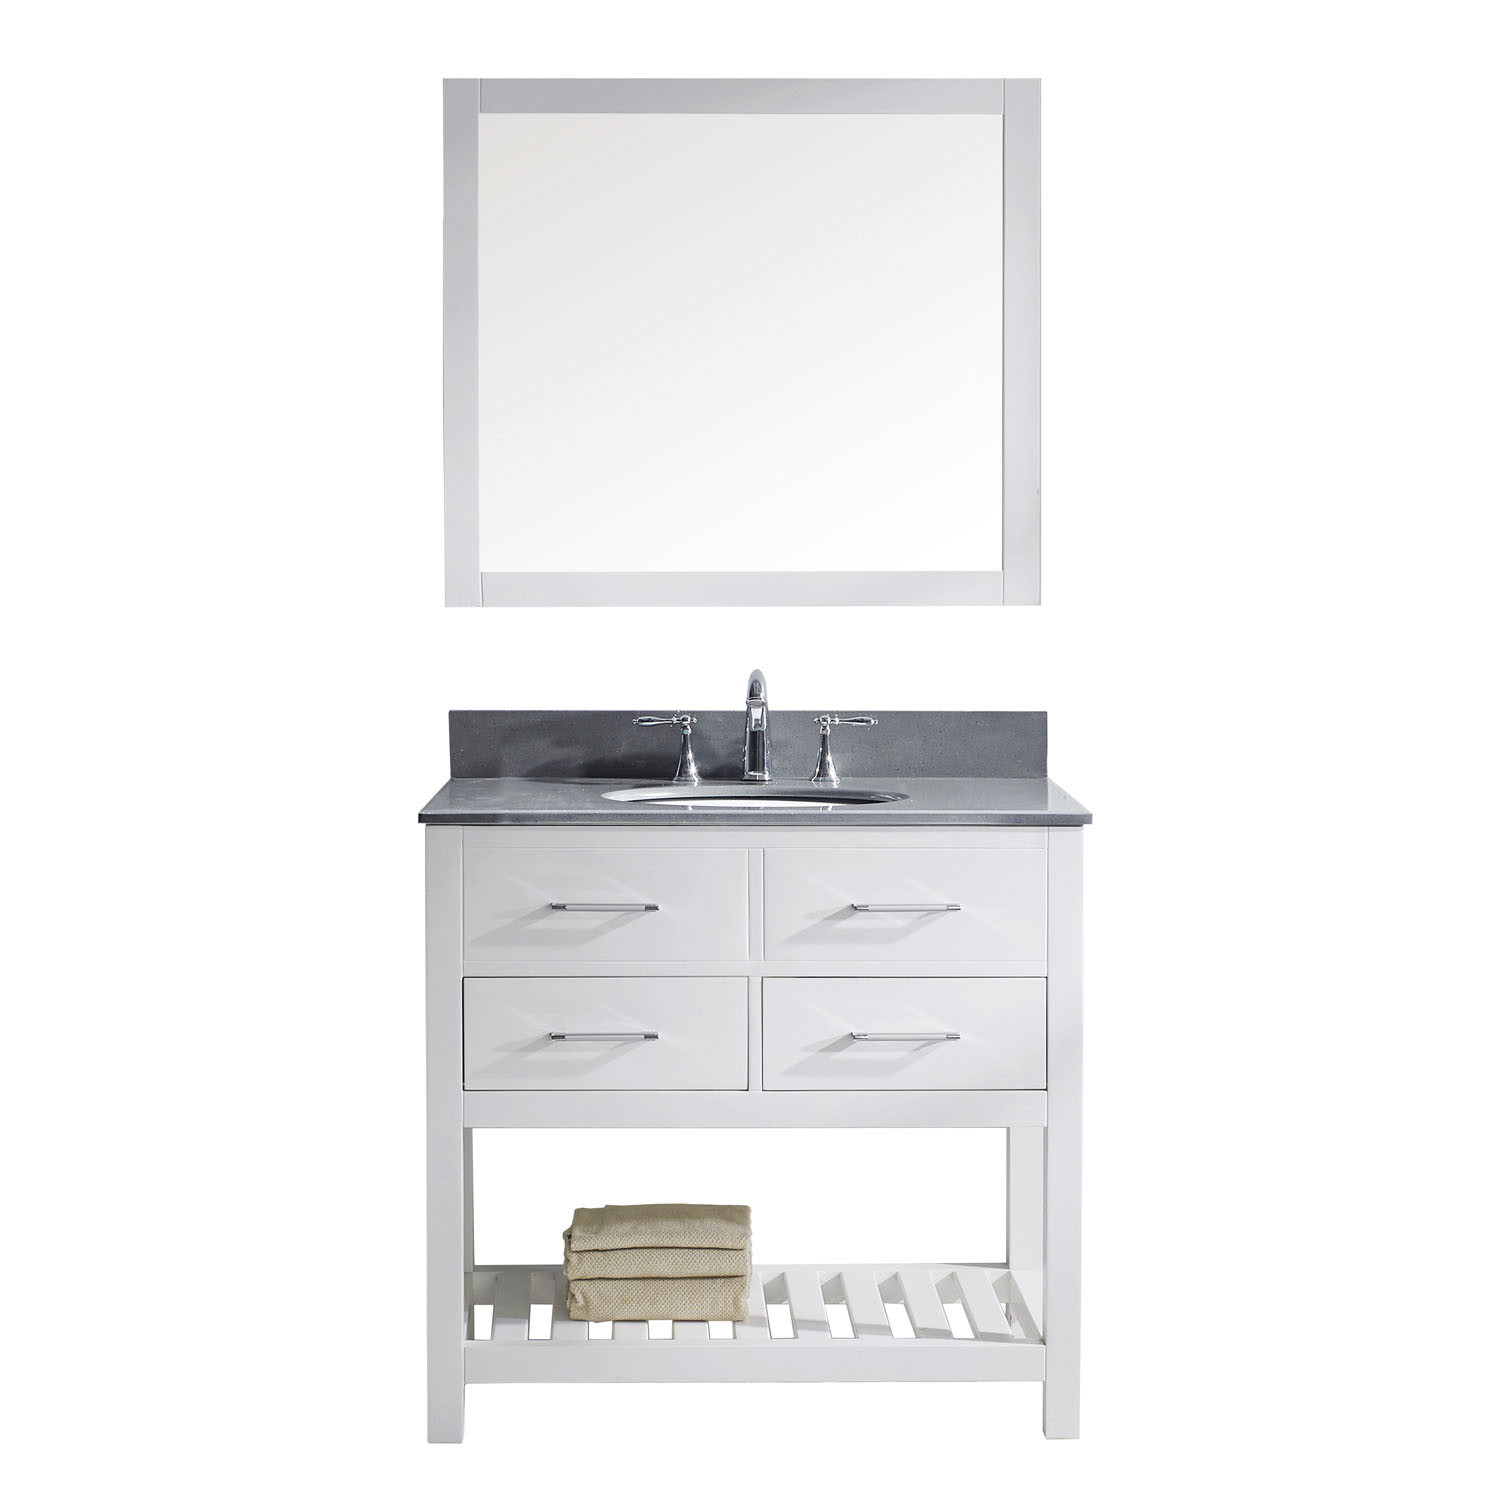 Virtu MS-2236-GQRO-WH-002 Caroline Estate 36 Inch Single Bathroom Vanity Set In White